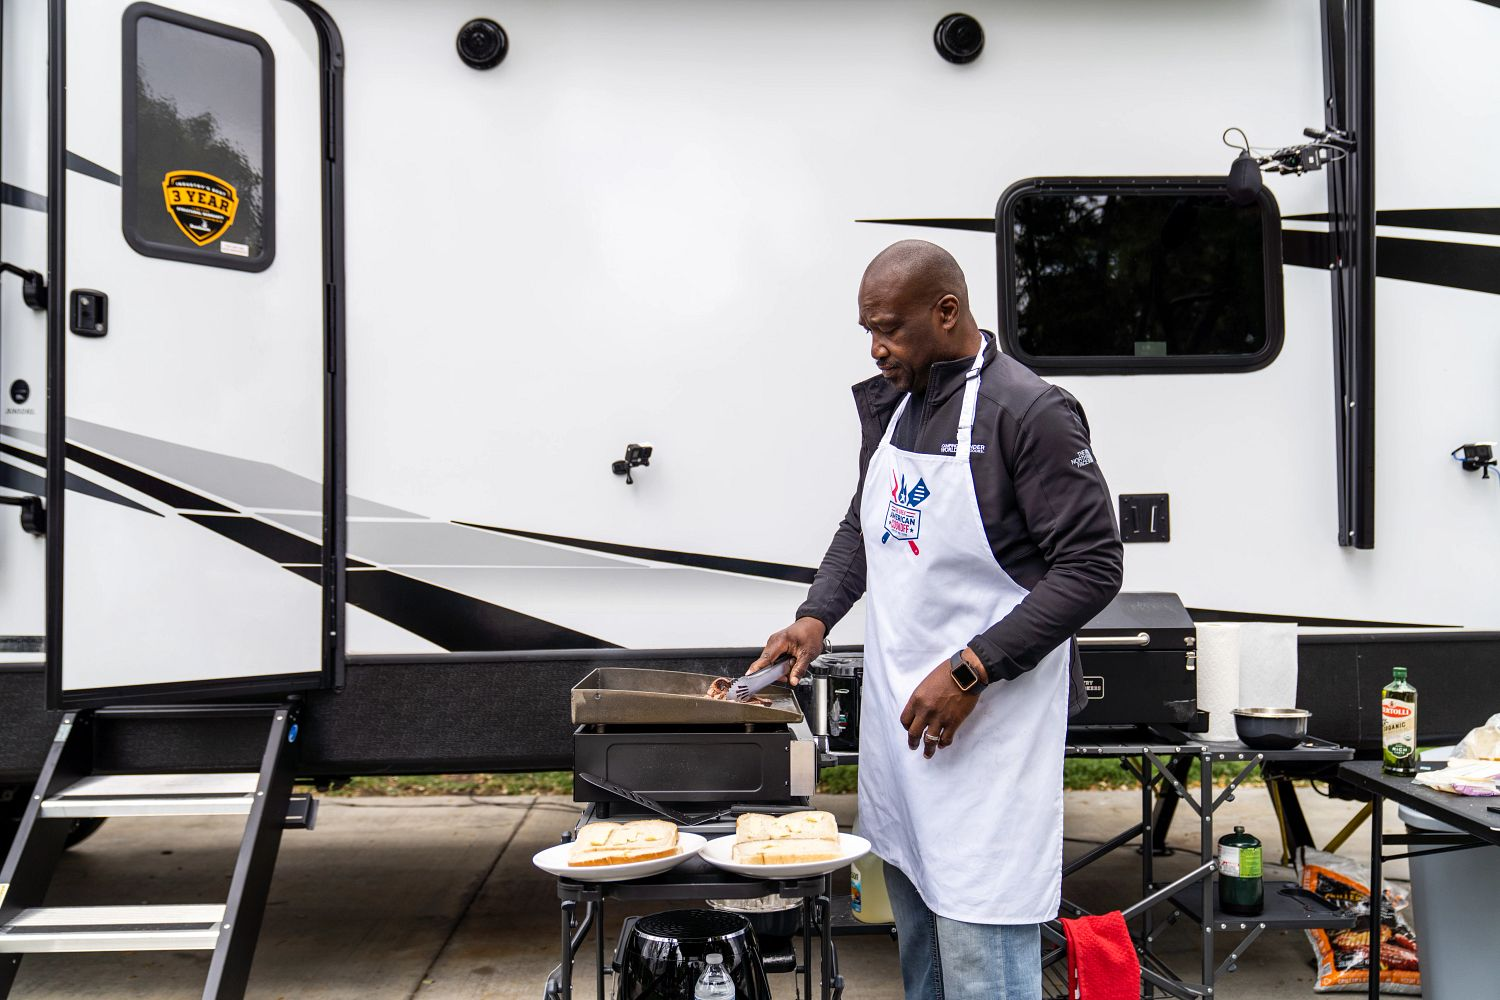 Keith Sims Makes Philly Cheesesteak Sandwich